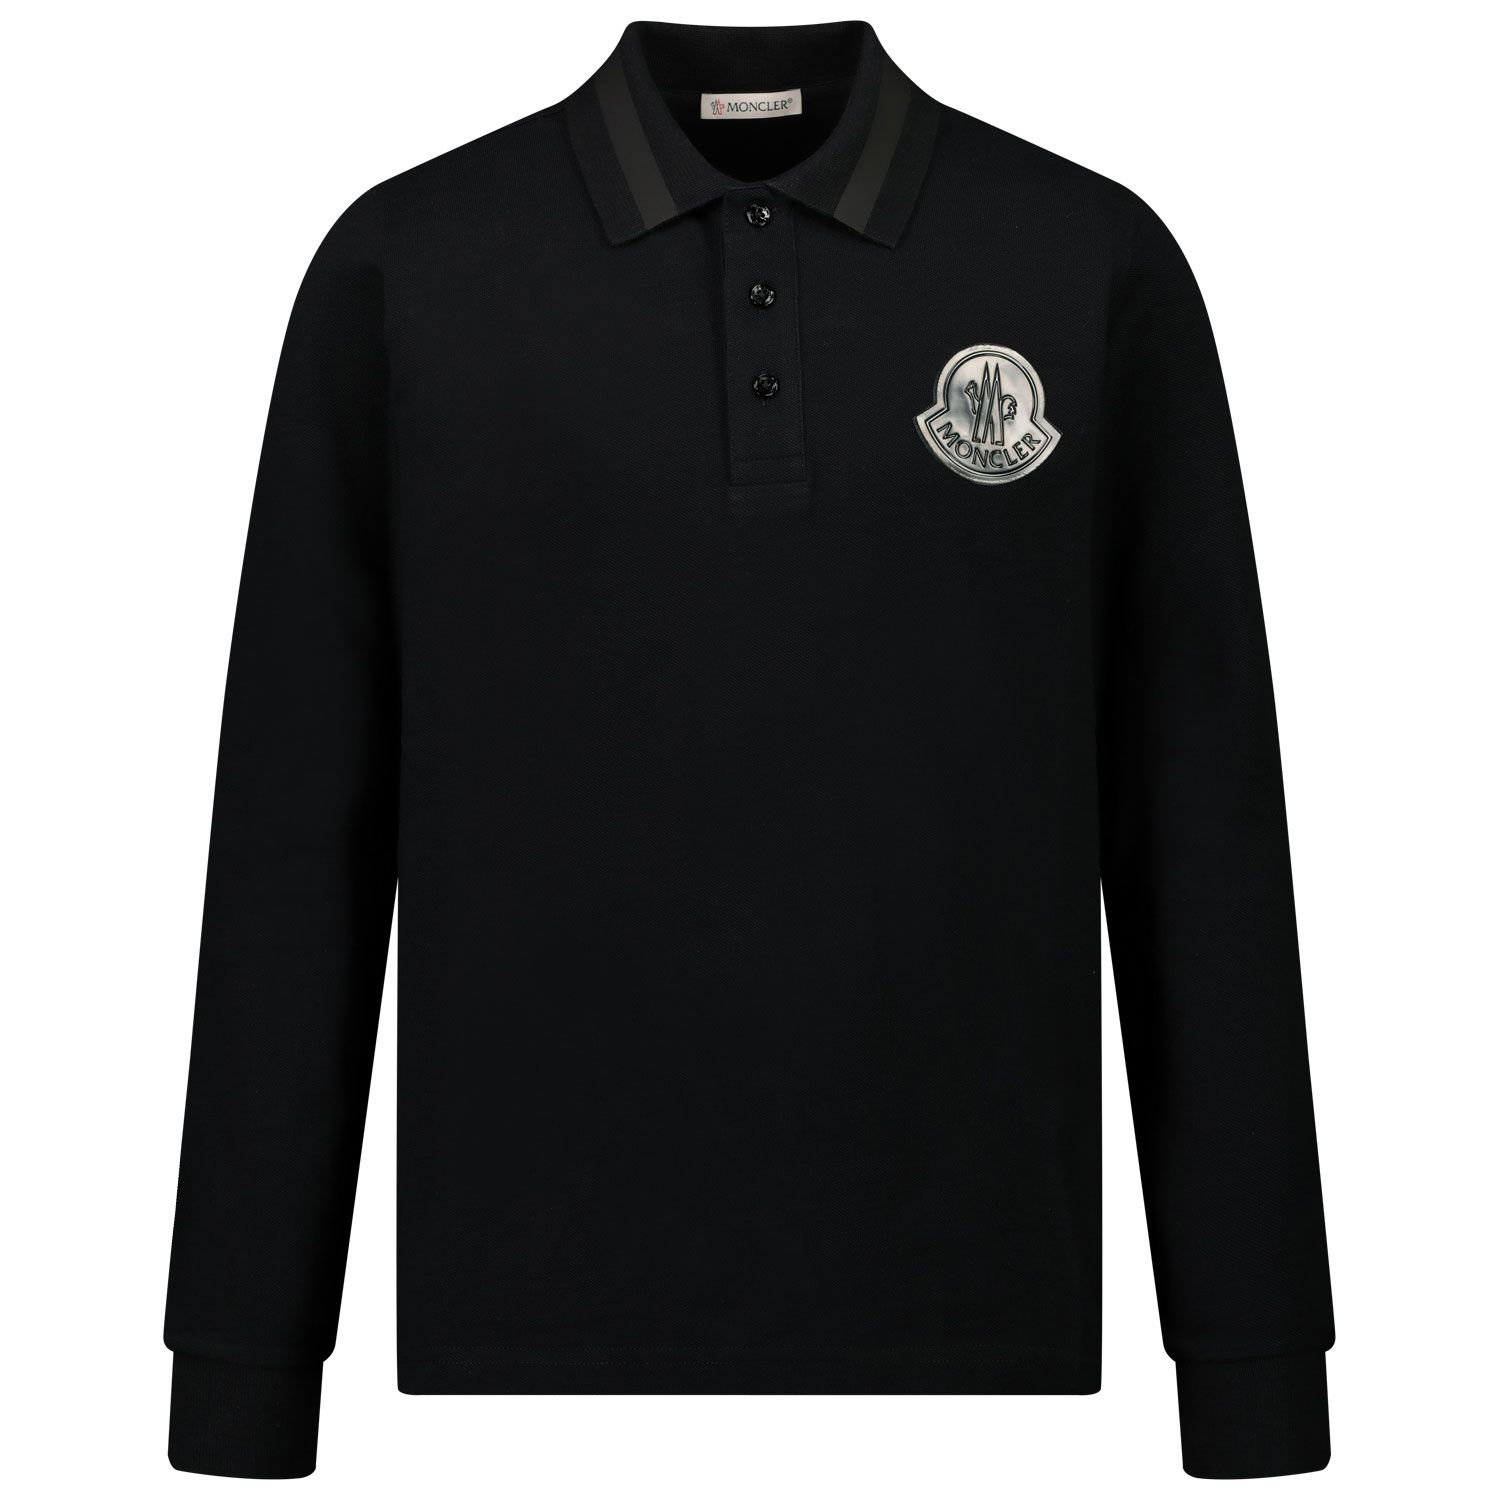 Picture of Moncler 8B70620 kids polo shirt black